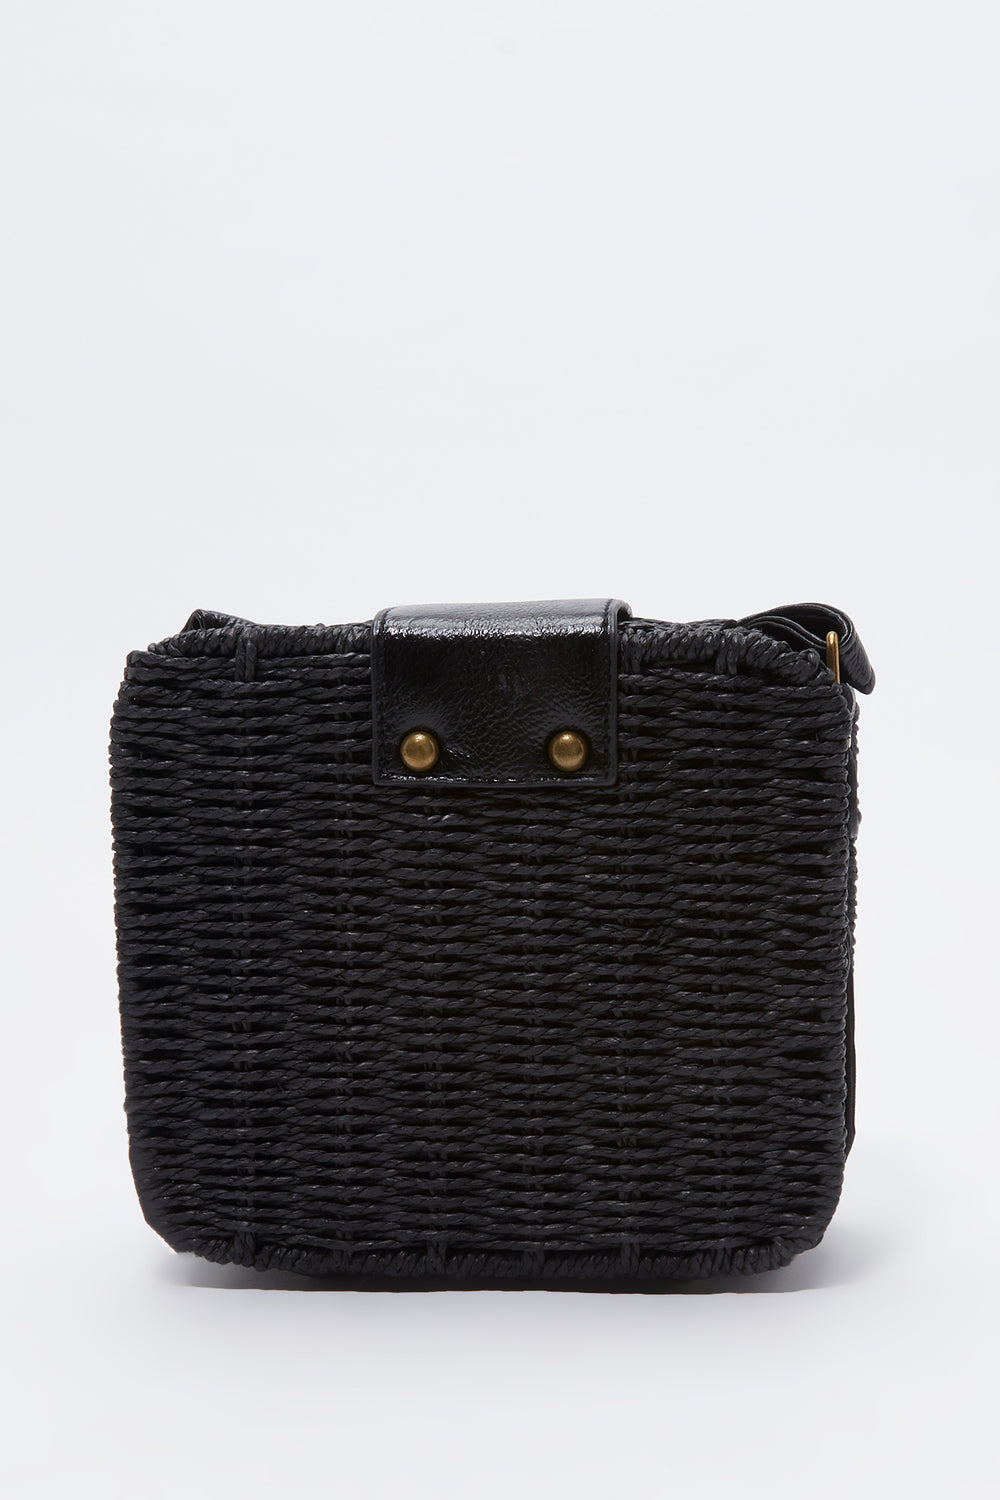 Box Wicker Bag Black